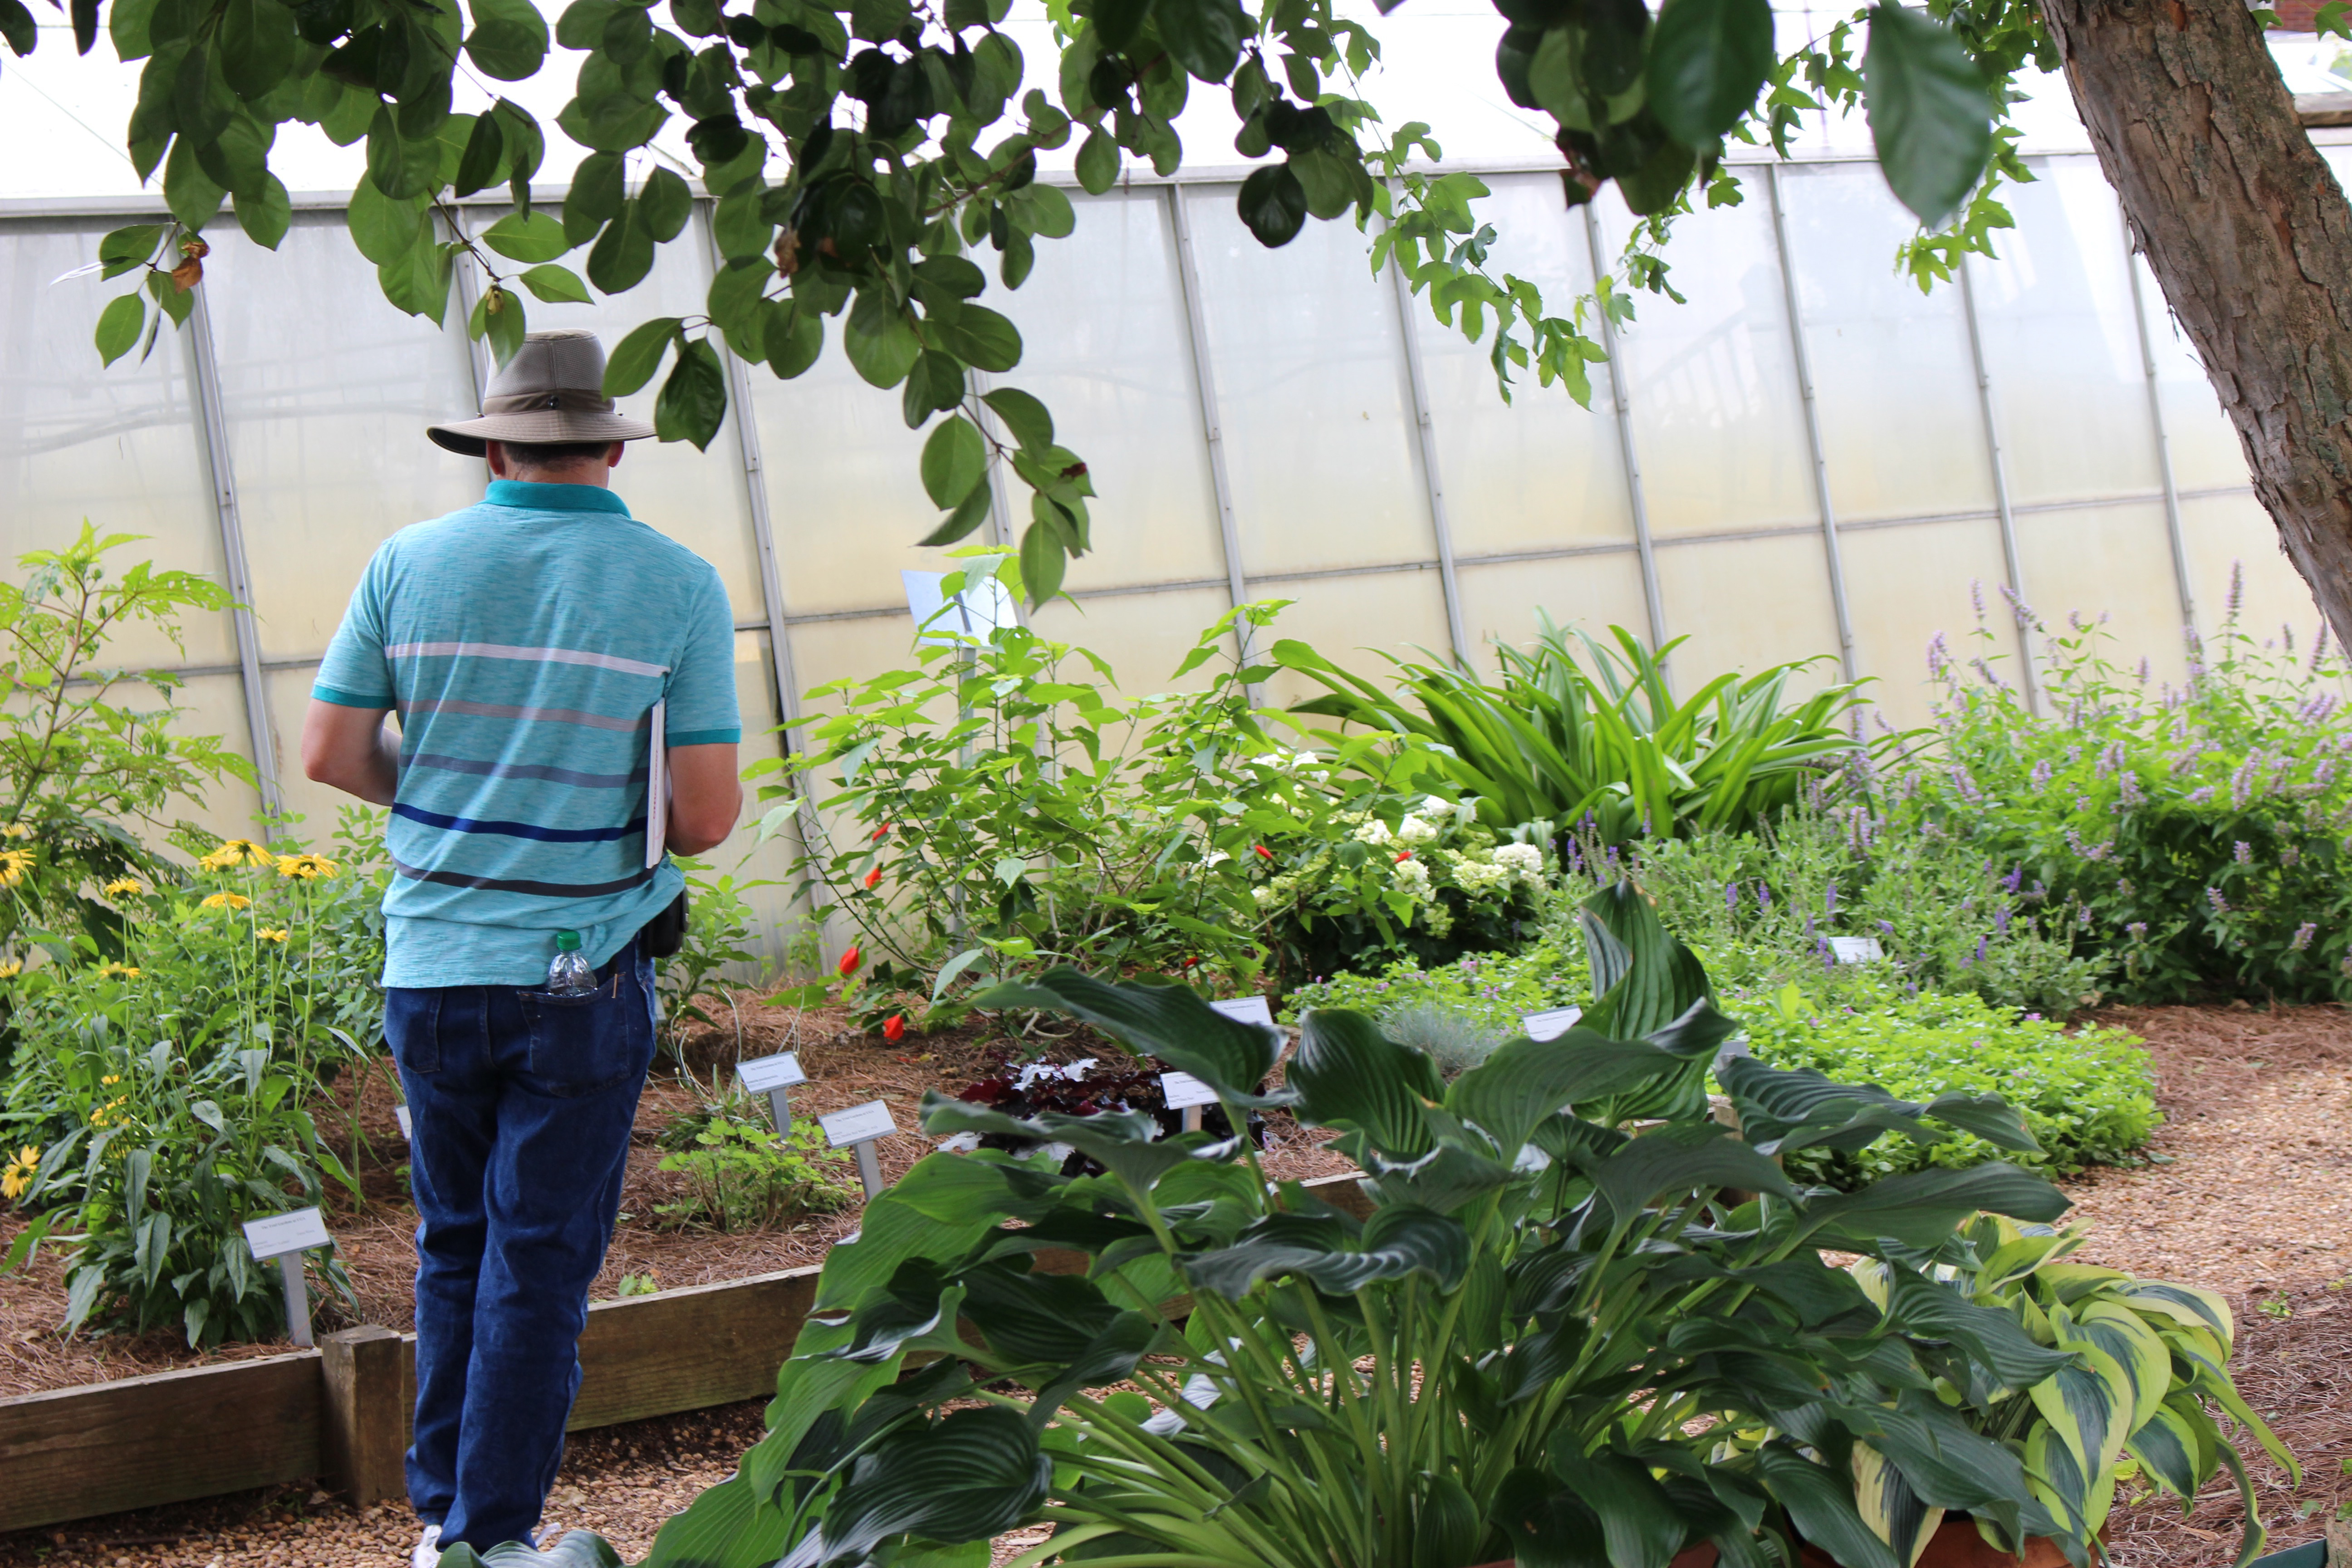 A nursery grower examines plants growing at the Trial Gardens at UGA. The gardens will hold a public open house July 9.